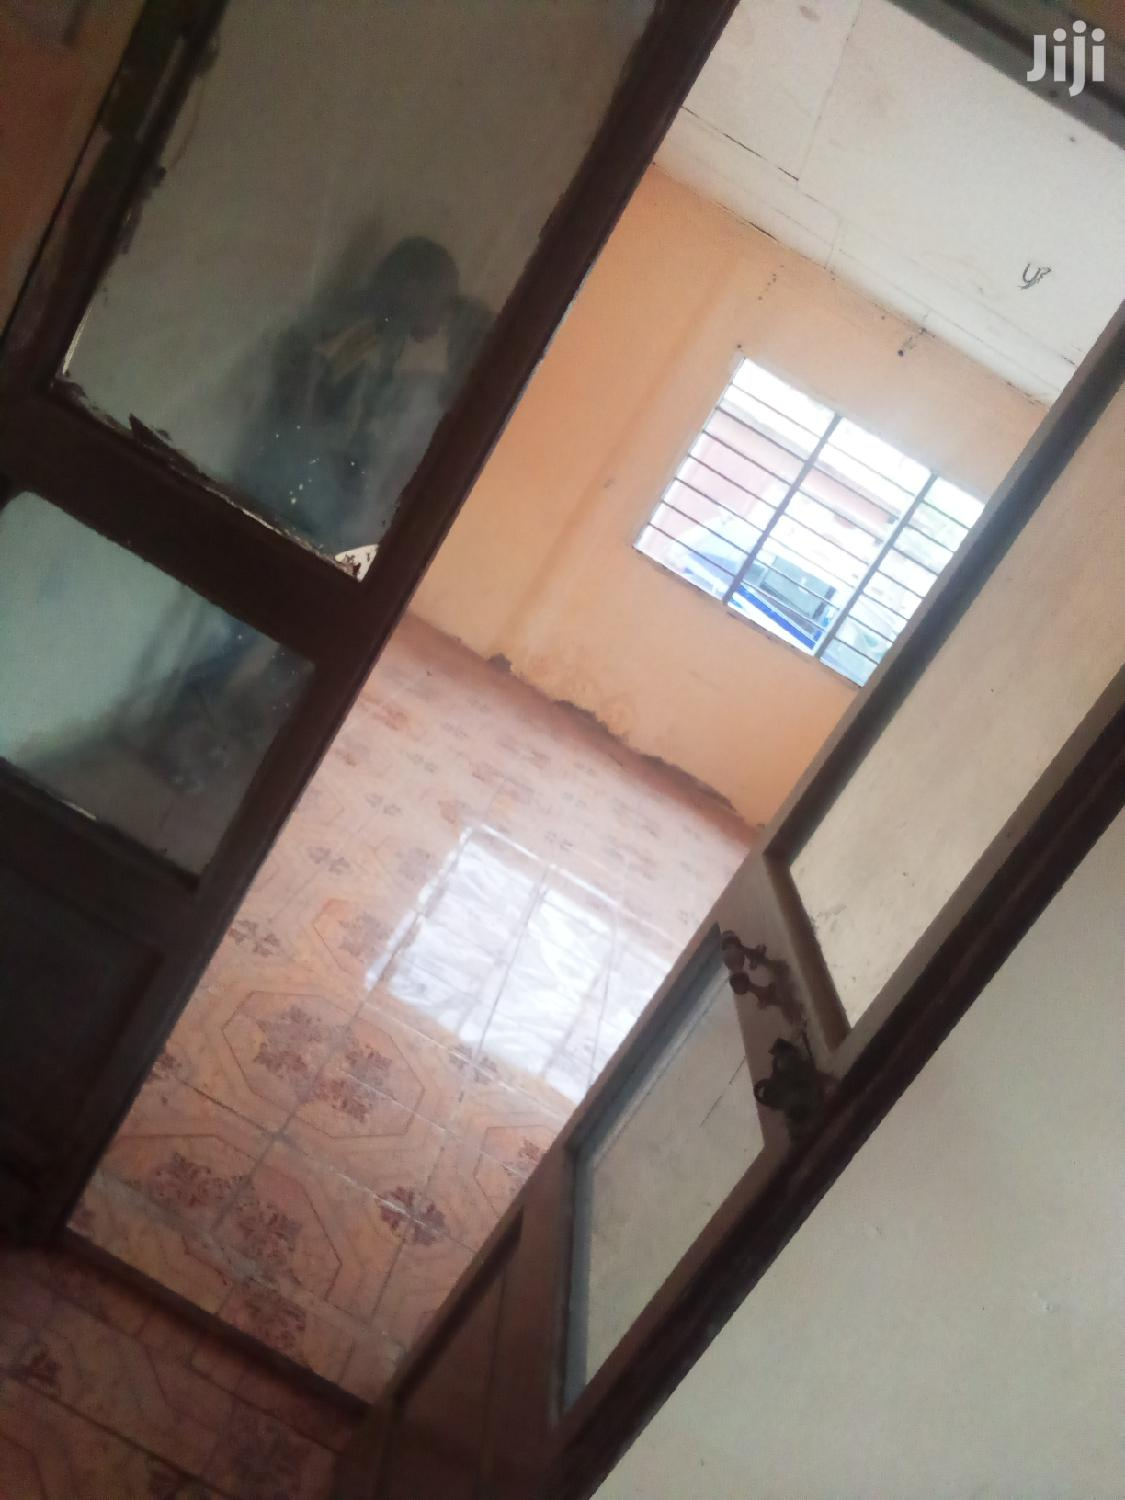 Single Bedroom House In Sinza E For Rent | Houses & Apartments For Rent for sale in Sinza, Kinondoni, Tanzania